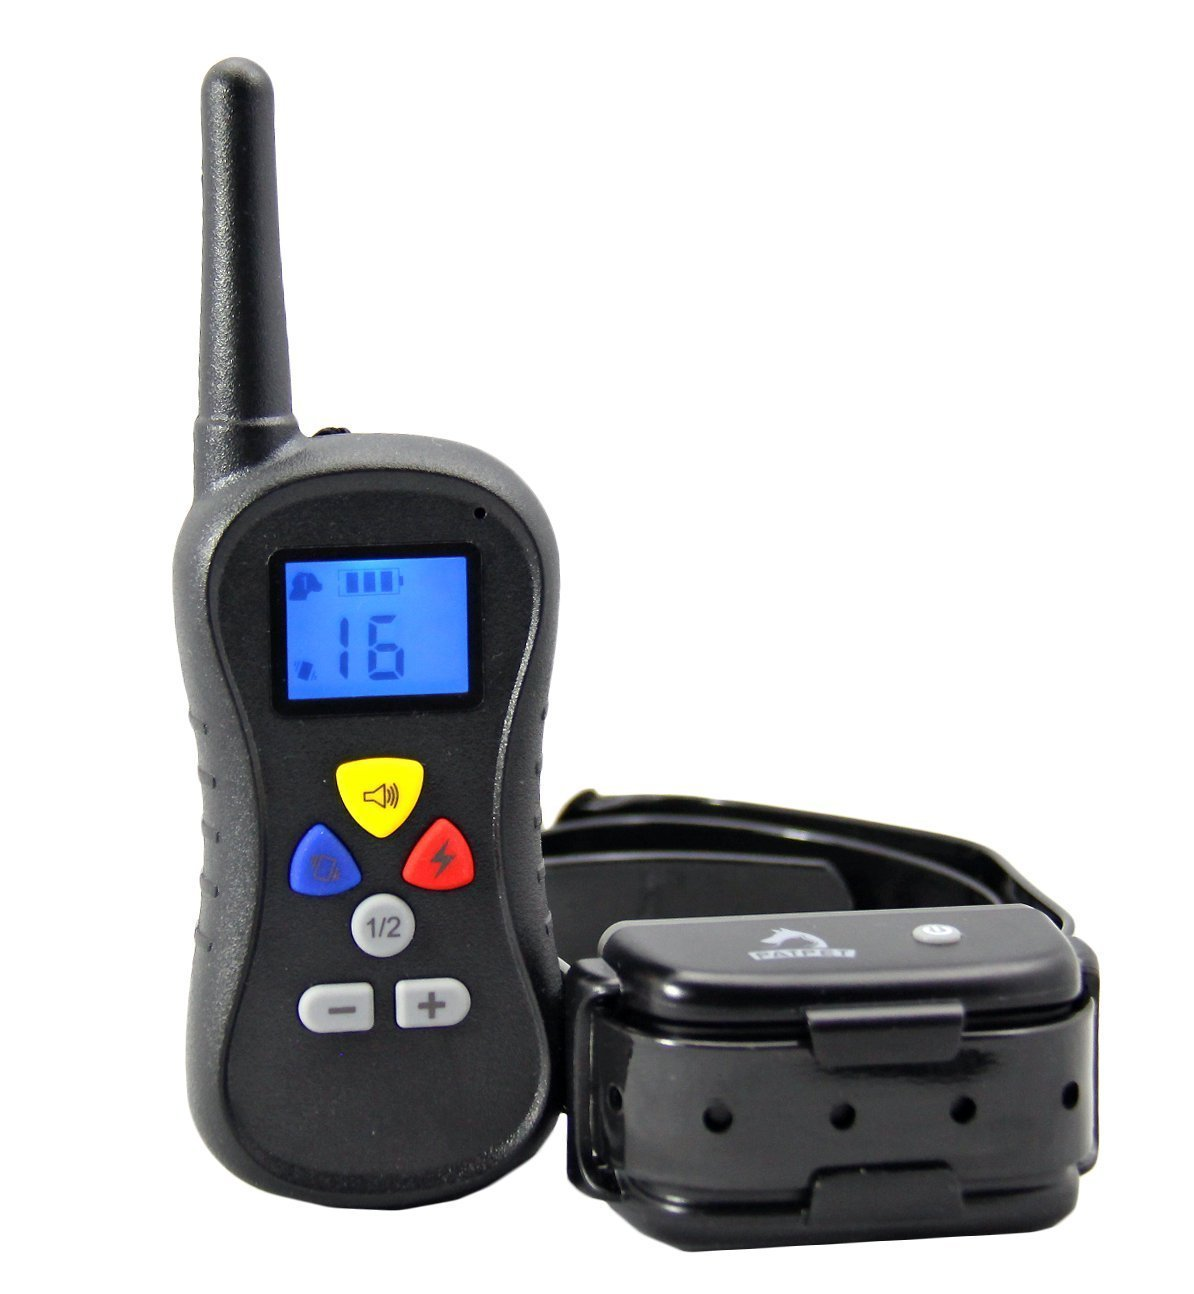 TINDERALA 438 yd.(400m) Training Collar with Remote Control 16 levels Dog with Safe Beep, Vibration function, Rechargeable dog training collar, Rechargeable Safety Shock Electric Collar for Dogs